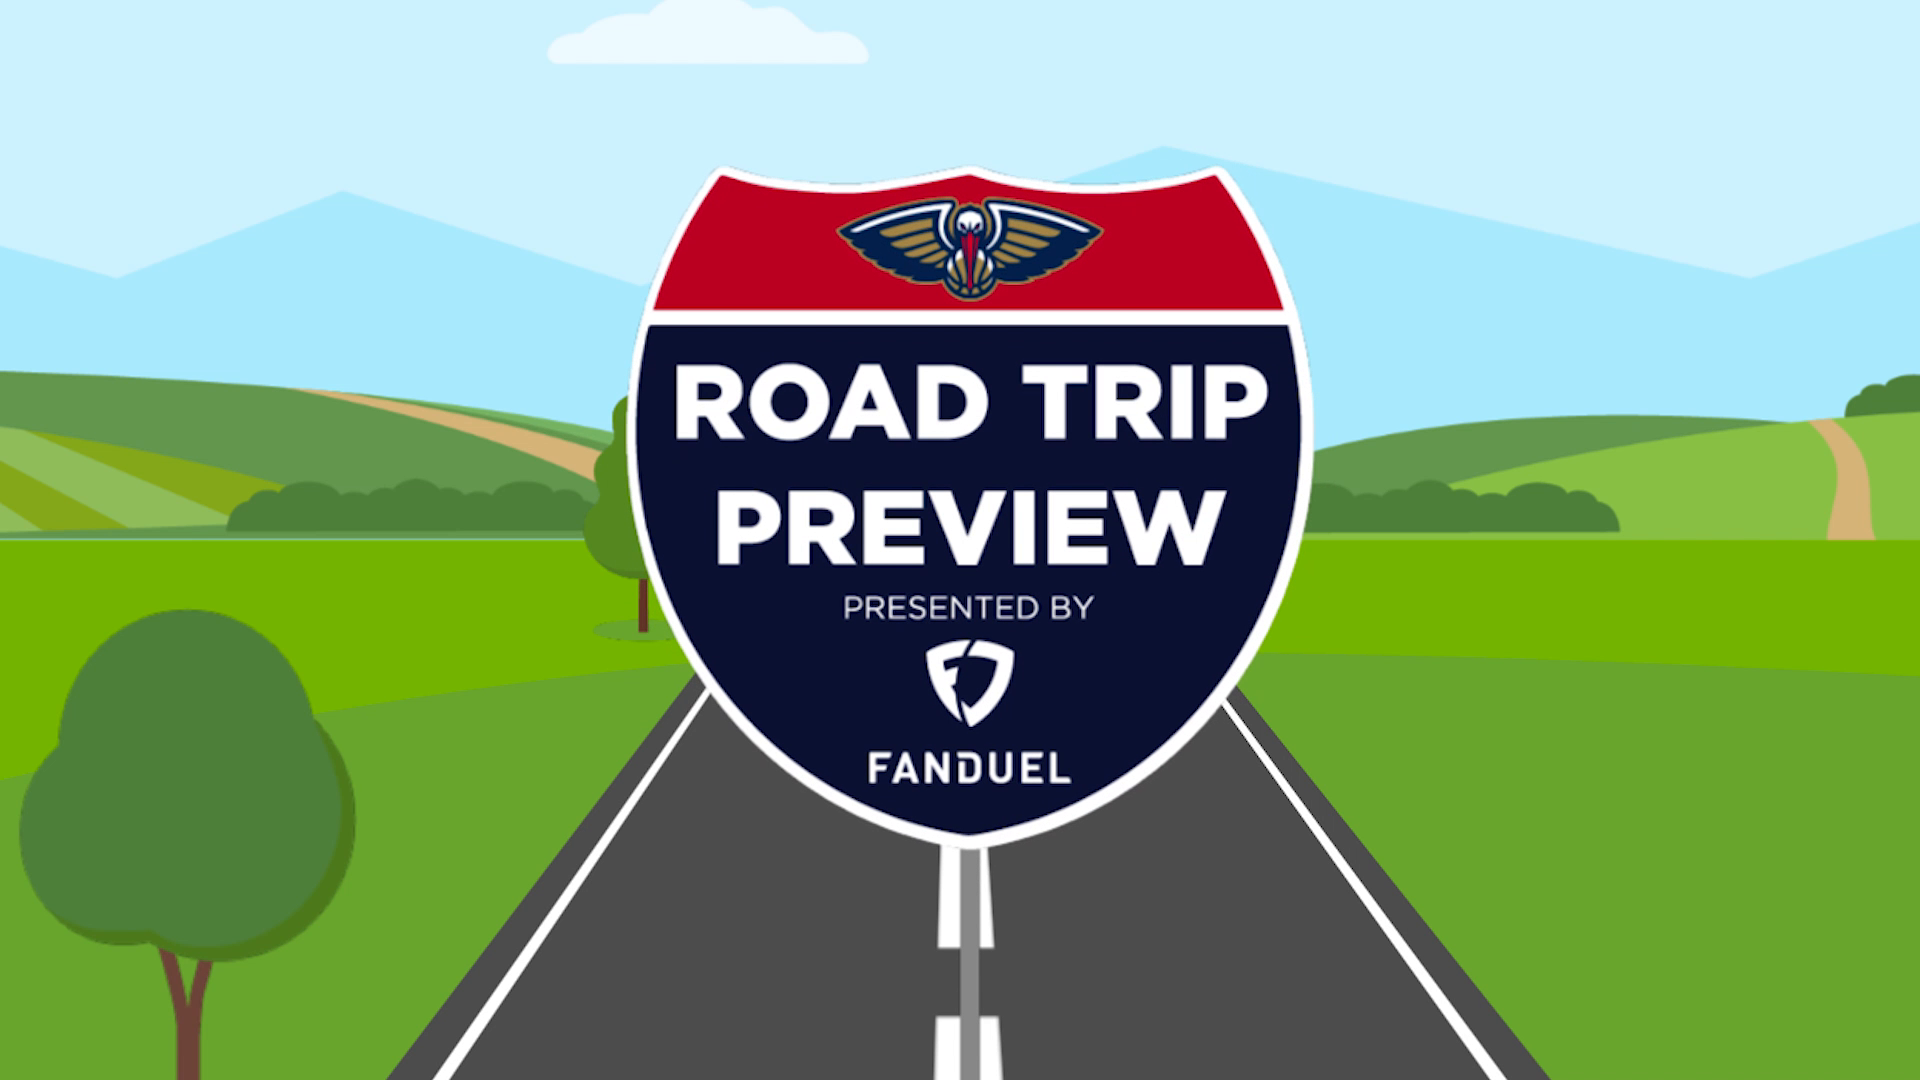 Pelicans Road Trip Preview presented by Fan Duel   Oklahoma City